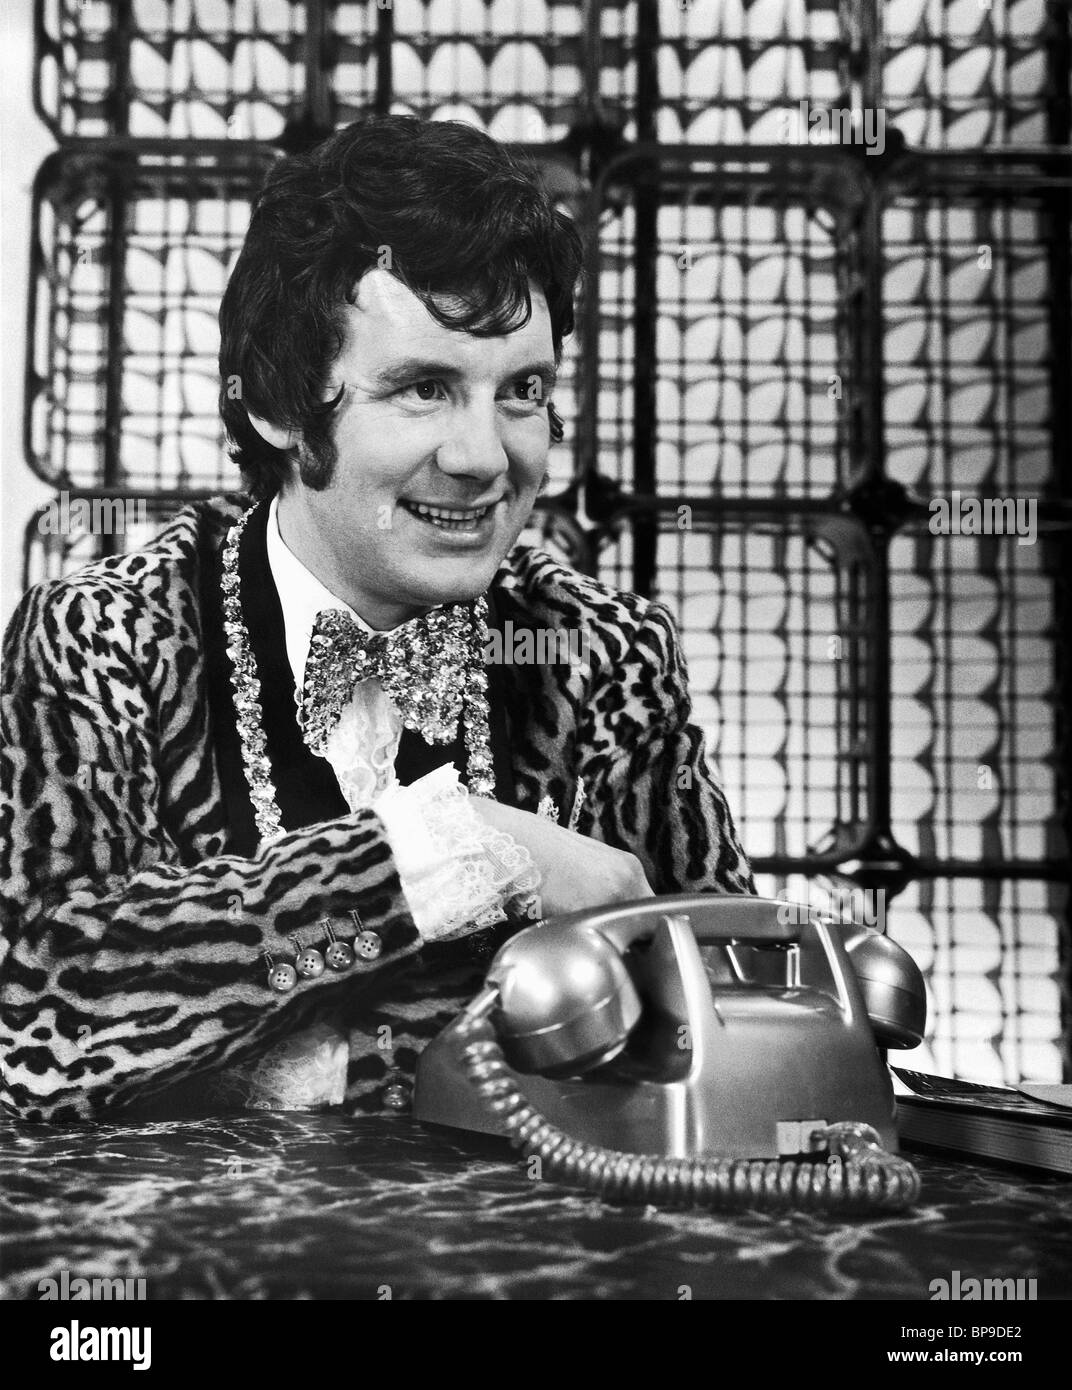 MICHAEL PALIN MONTY PYTHON'S; AND NOW FOR SOMETHING COMPLETELY DIFFERENT (1971) - Stock Image